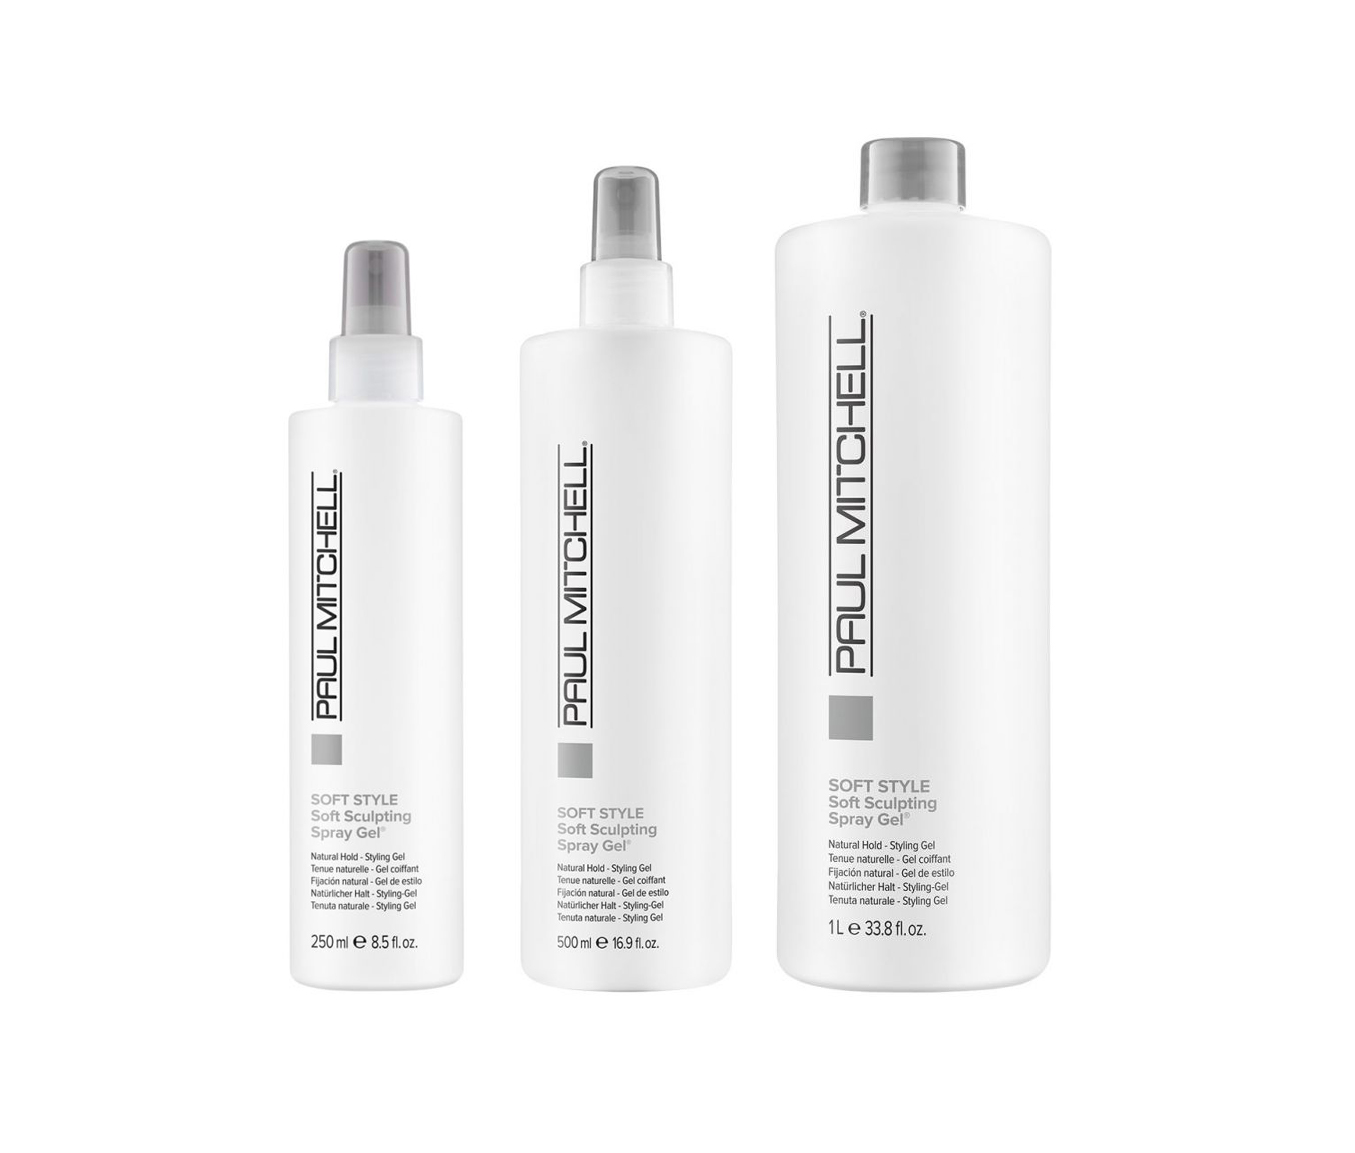 Paul Mitchell Soft Sculpting Spray Gel - ultraľahký pružný gél